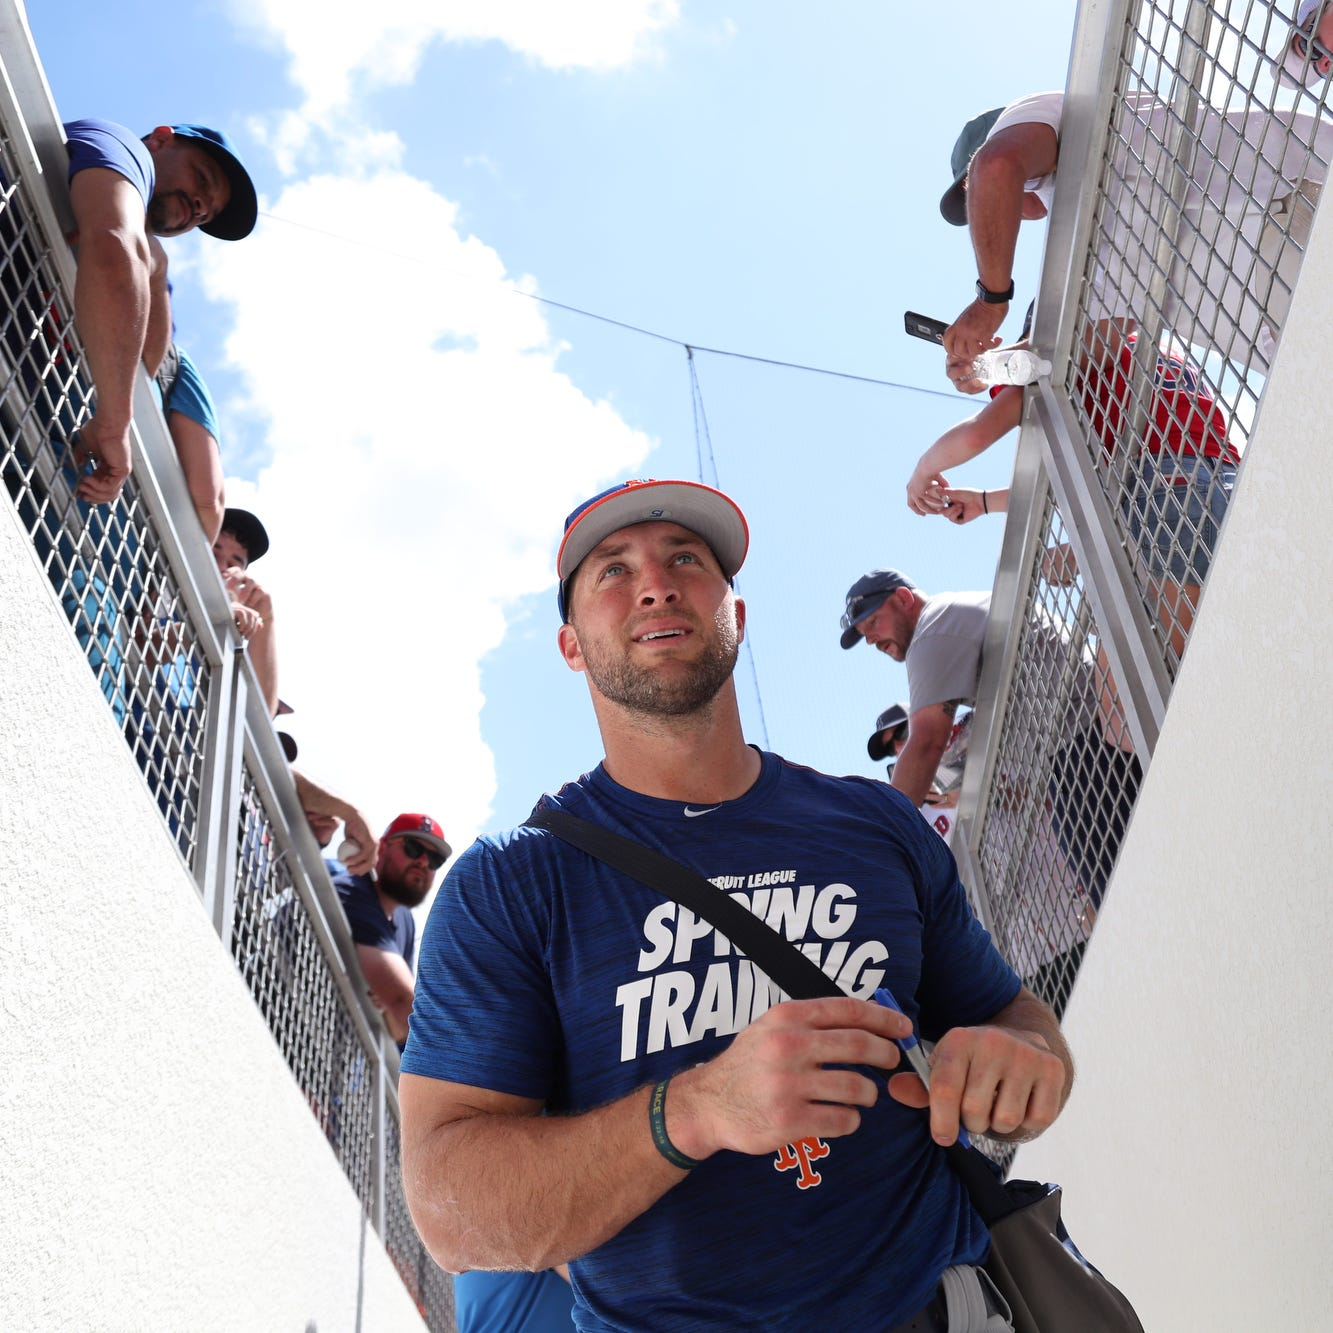 Tim Tebow reassigned to Mets' minor league camp, likely to start season in Class AAA